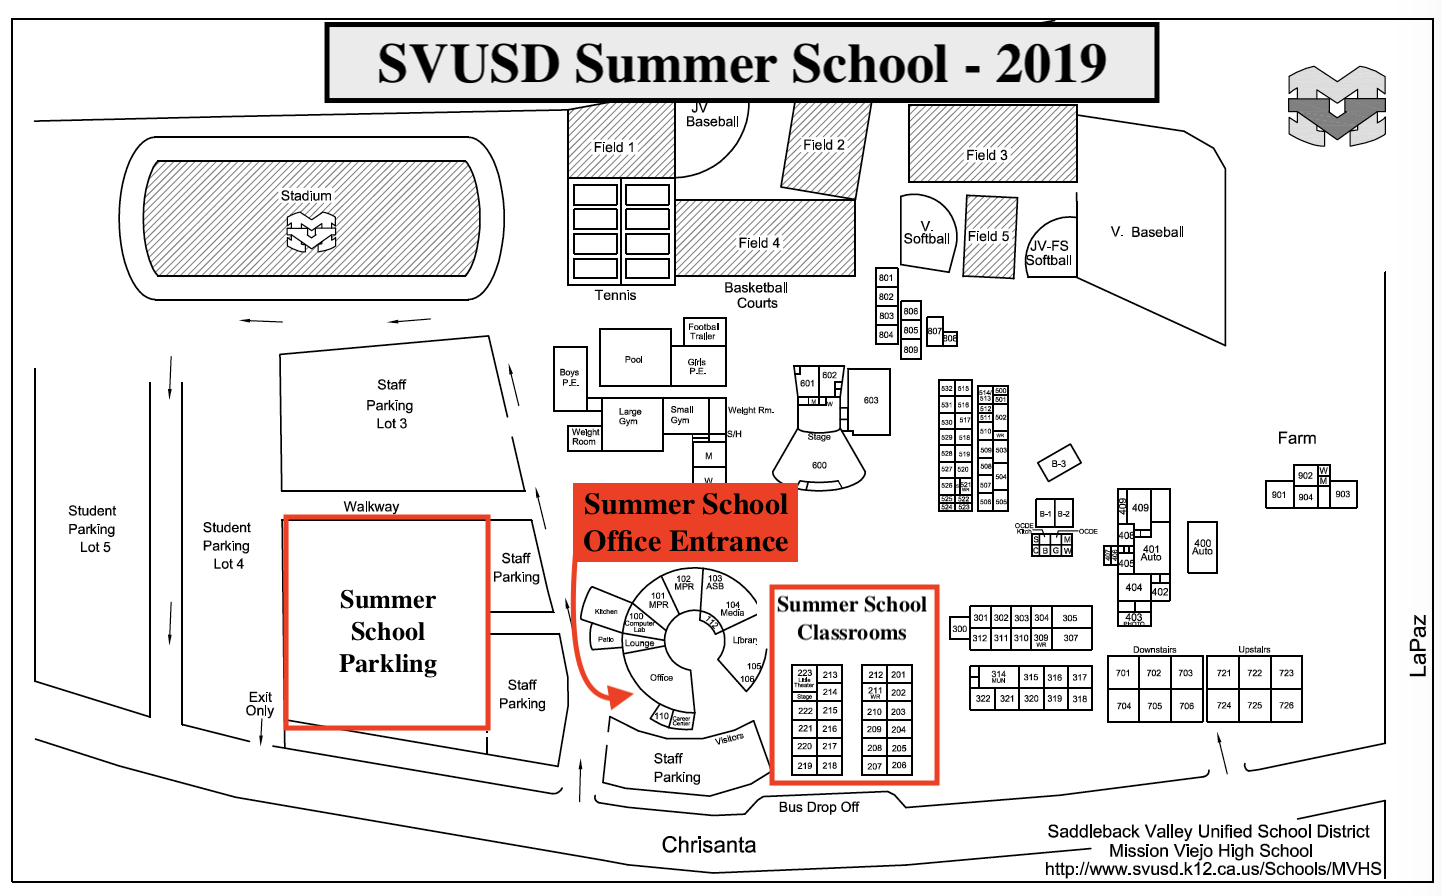 SVUSD Summer School Map - 2019